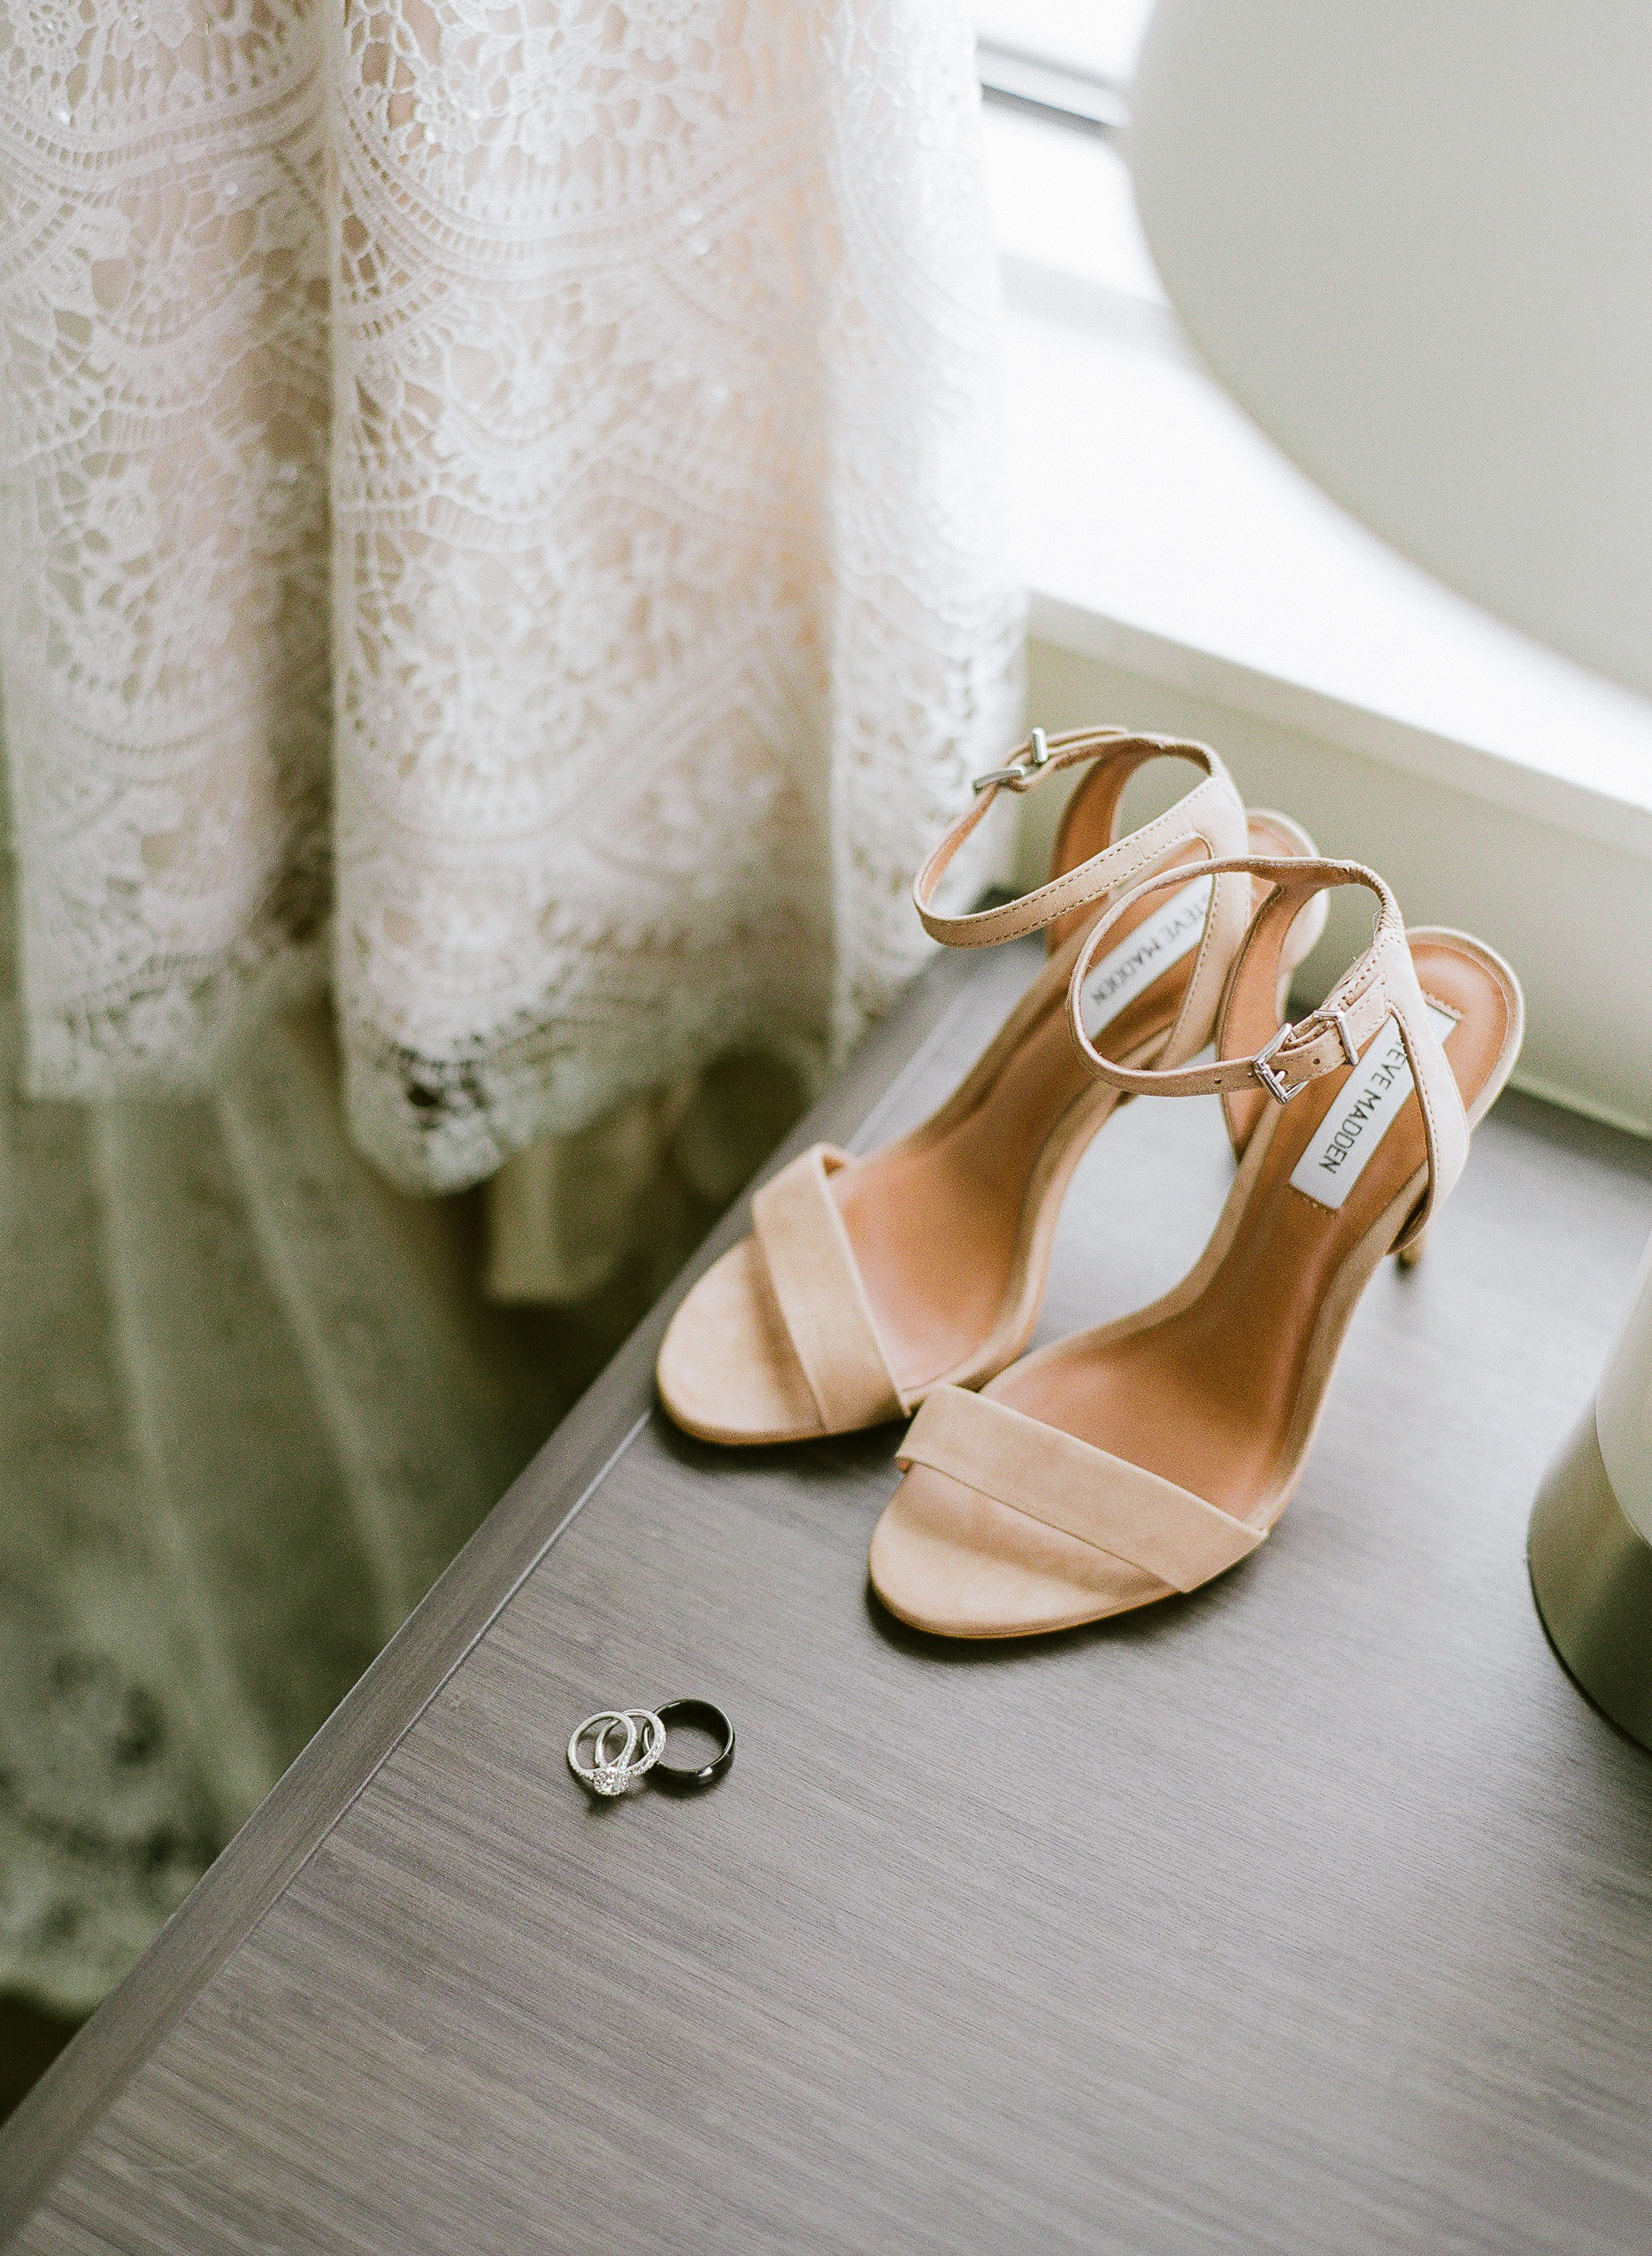 Details Brandon Chesbro Chicago Wedding-3.jpg